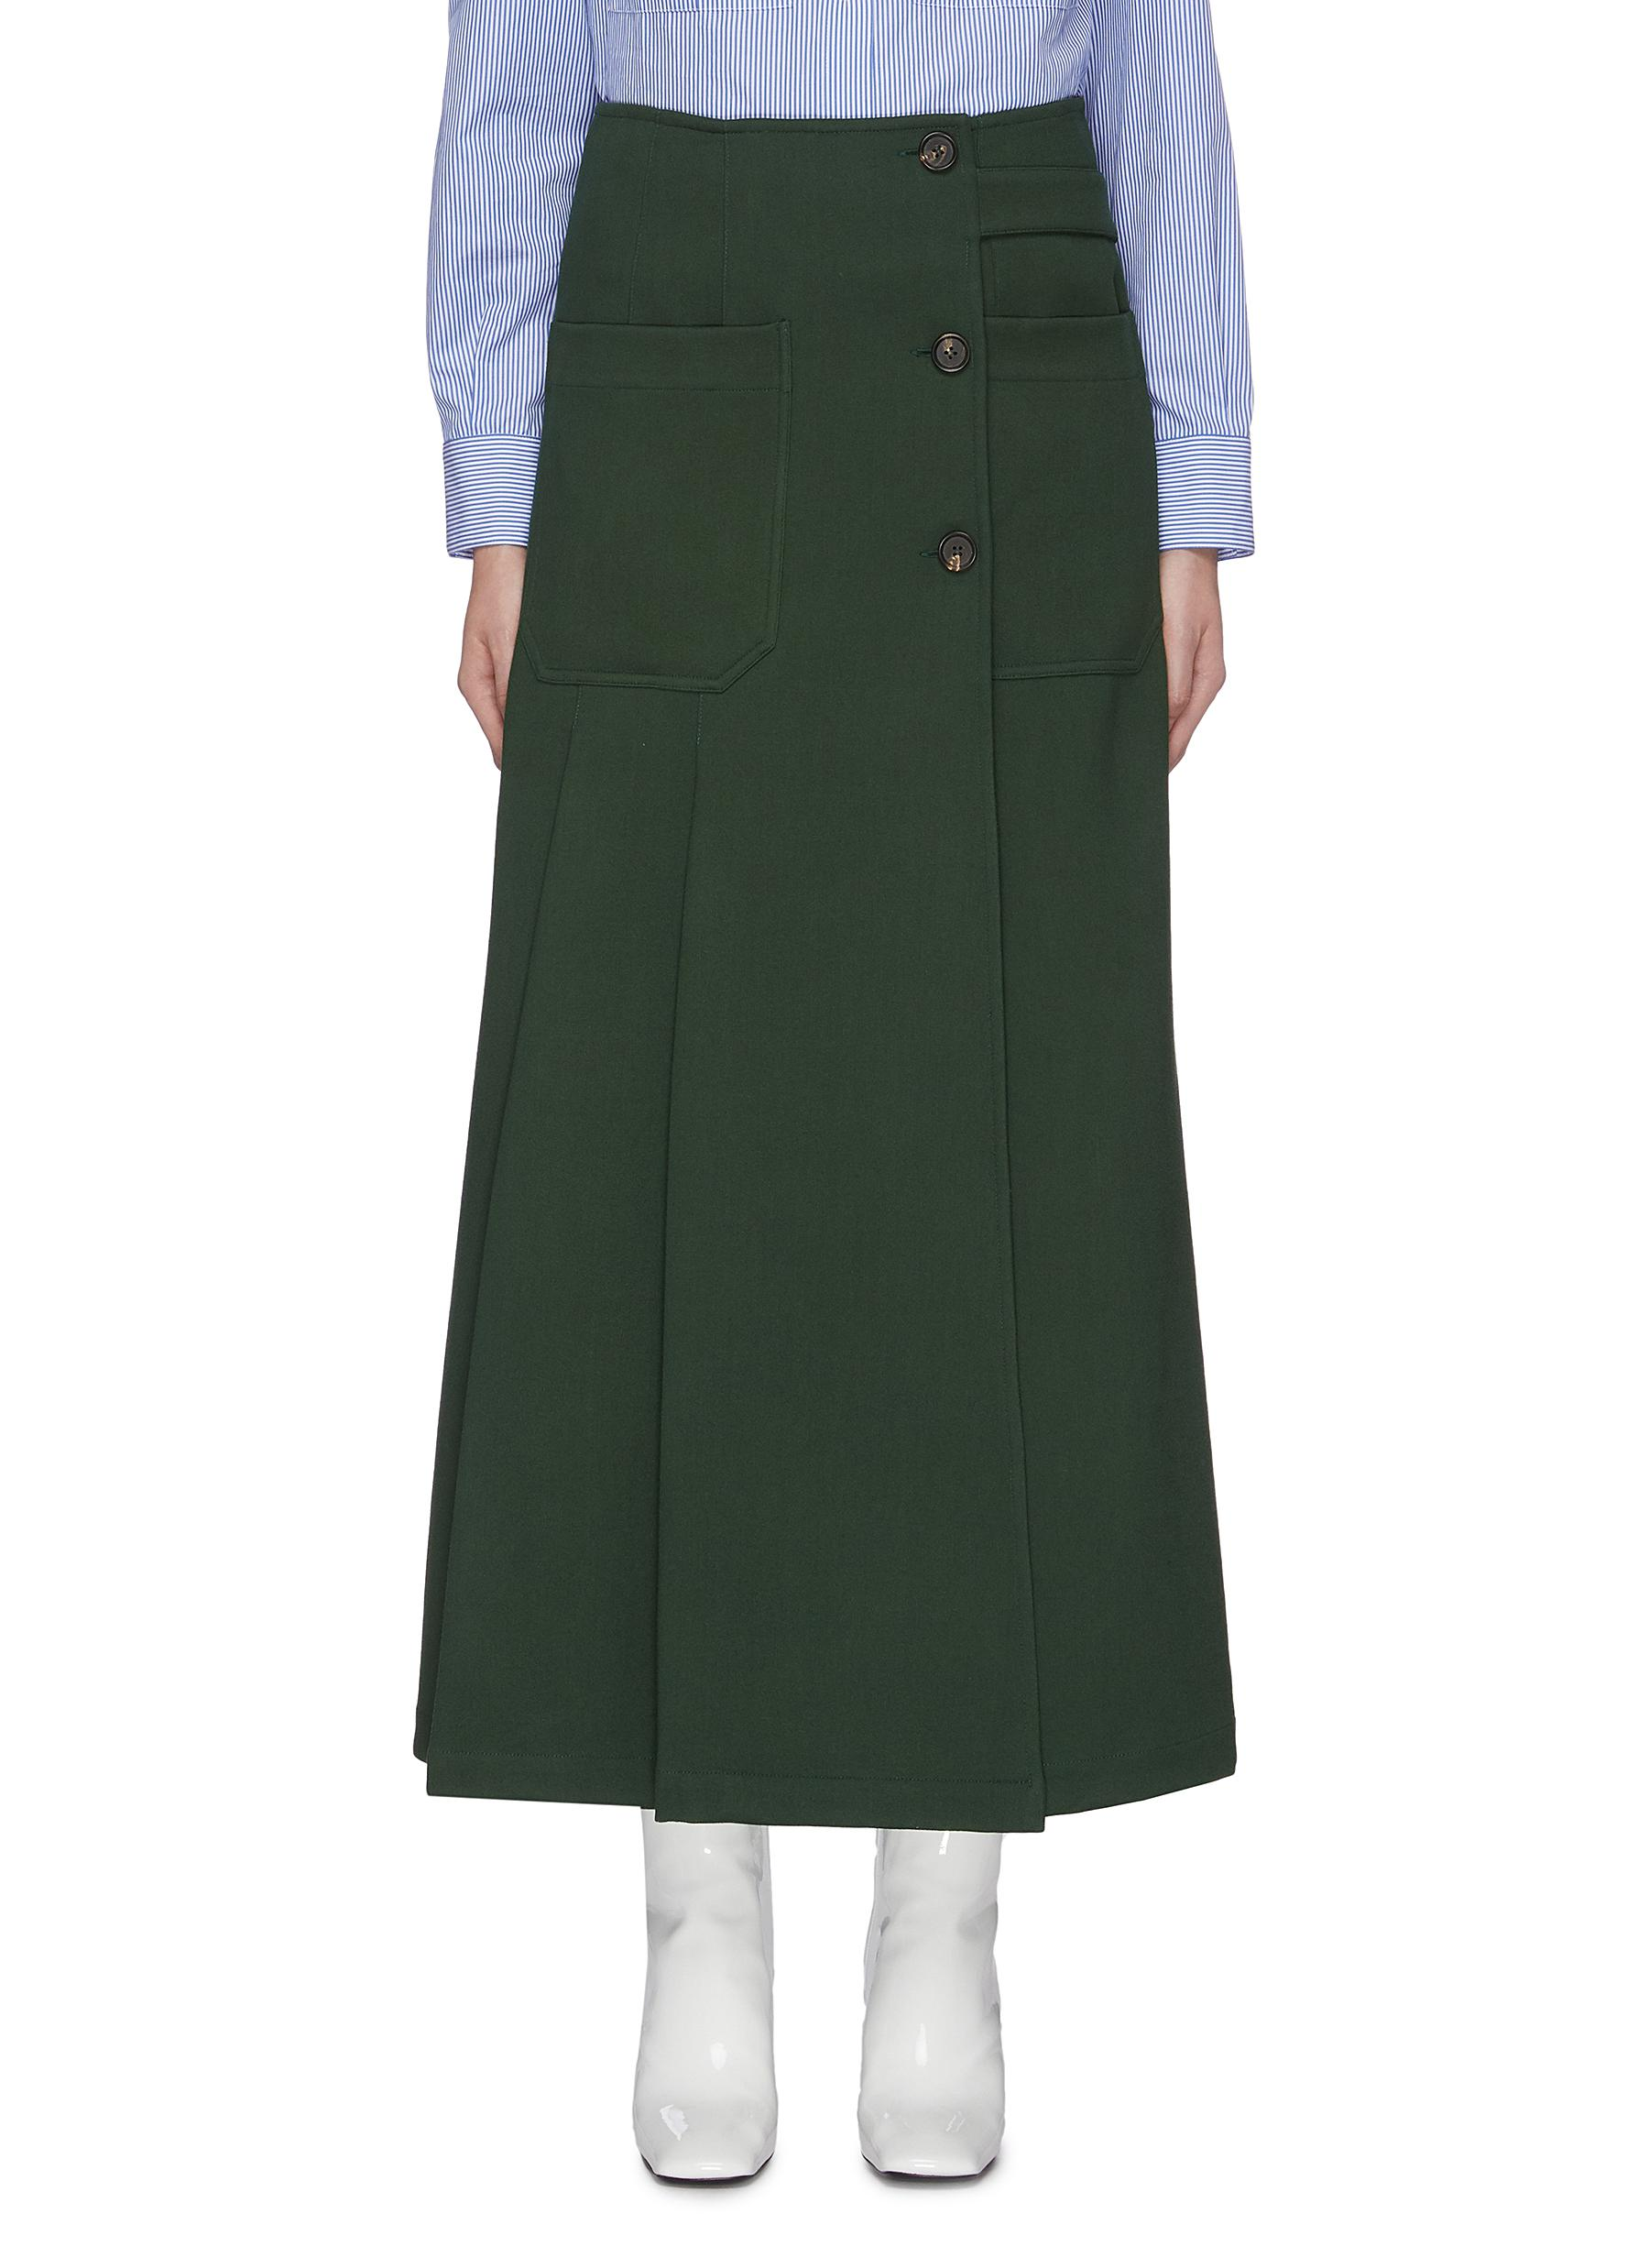 Patch pocket button front pleated skirt by Plan C